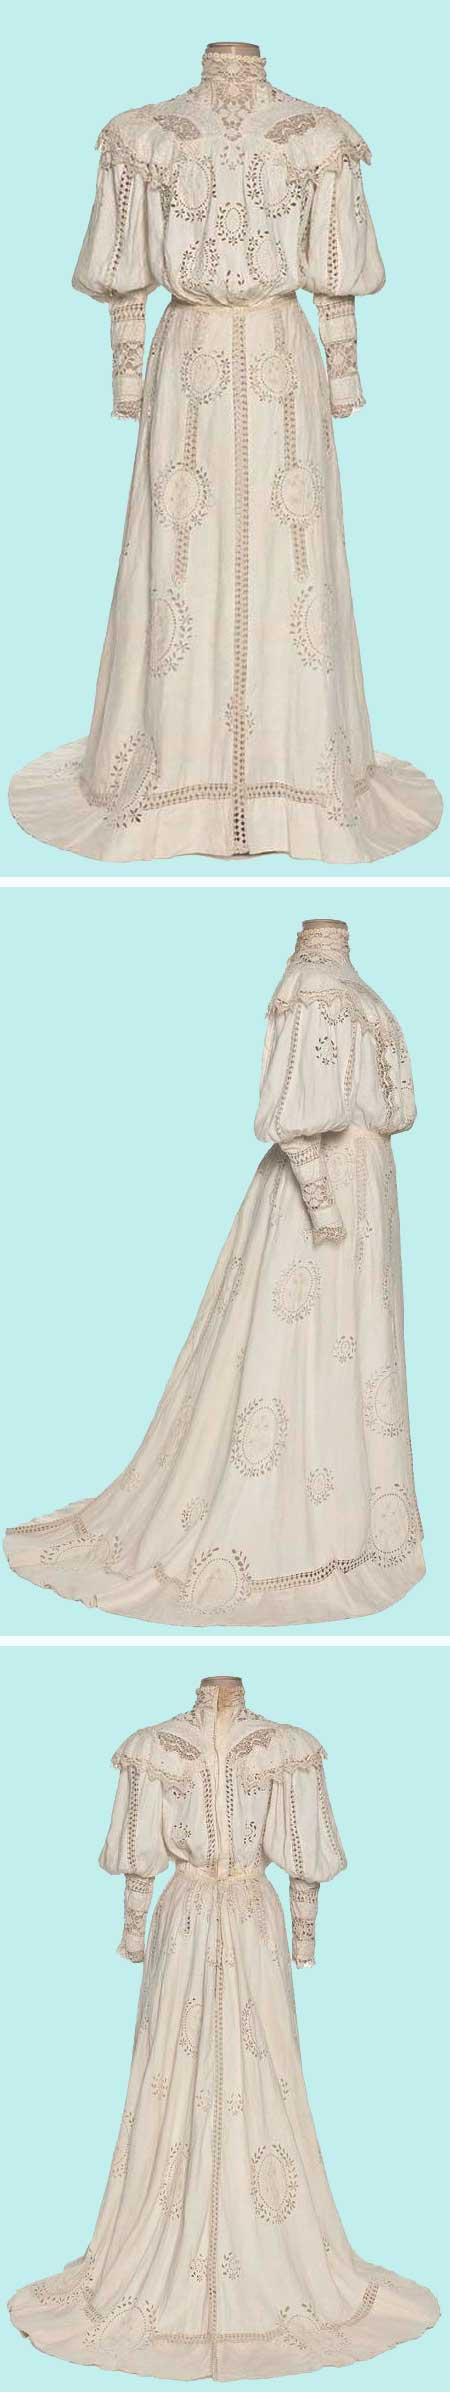 Two-piece dress, ca. 1900. Cotton with white embroidery and bobbin lace. Mother-of-pearl buttons. Les Arts Décoratifs